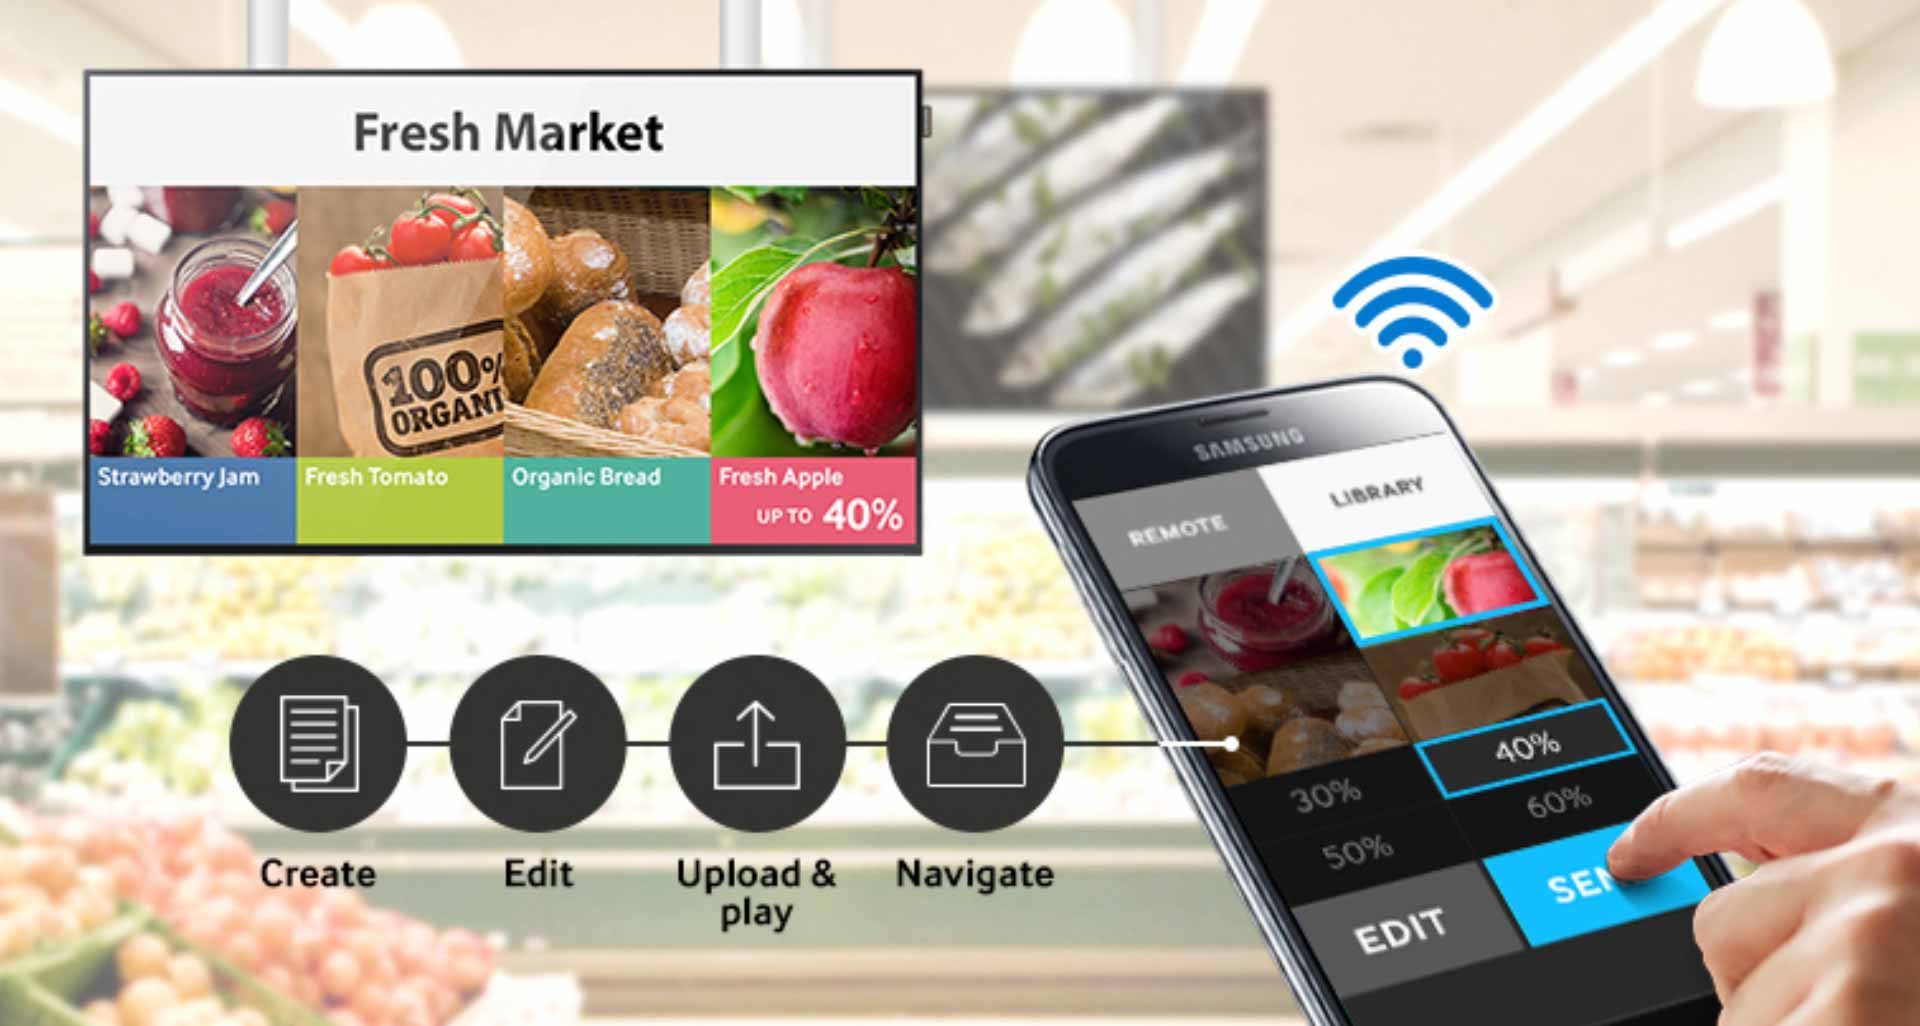 samsung 6 Manage digital signage wirelessly  virtually anywhere  anytime on a mobile device - نمایشگر اطلاع رسان دیجیتال سامسونگ 55 اینچ Samsung Digital Signage DB55E